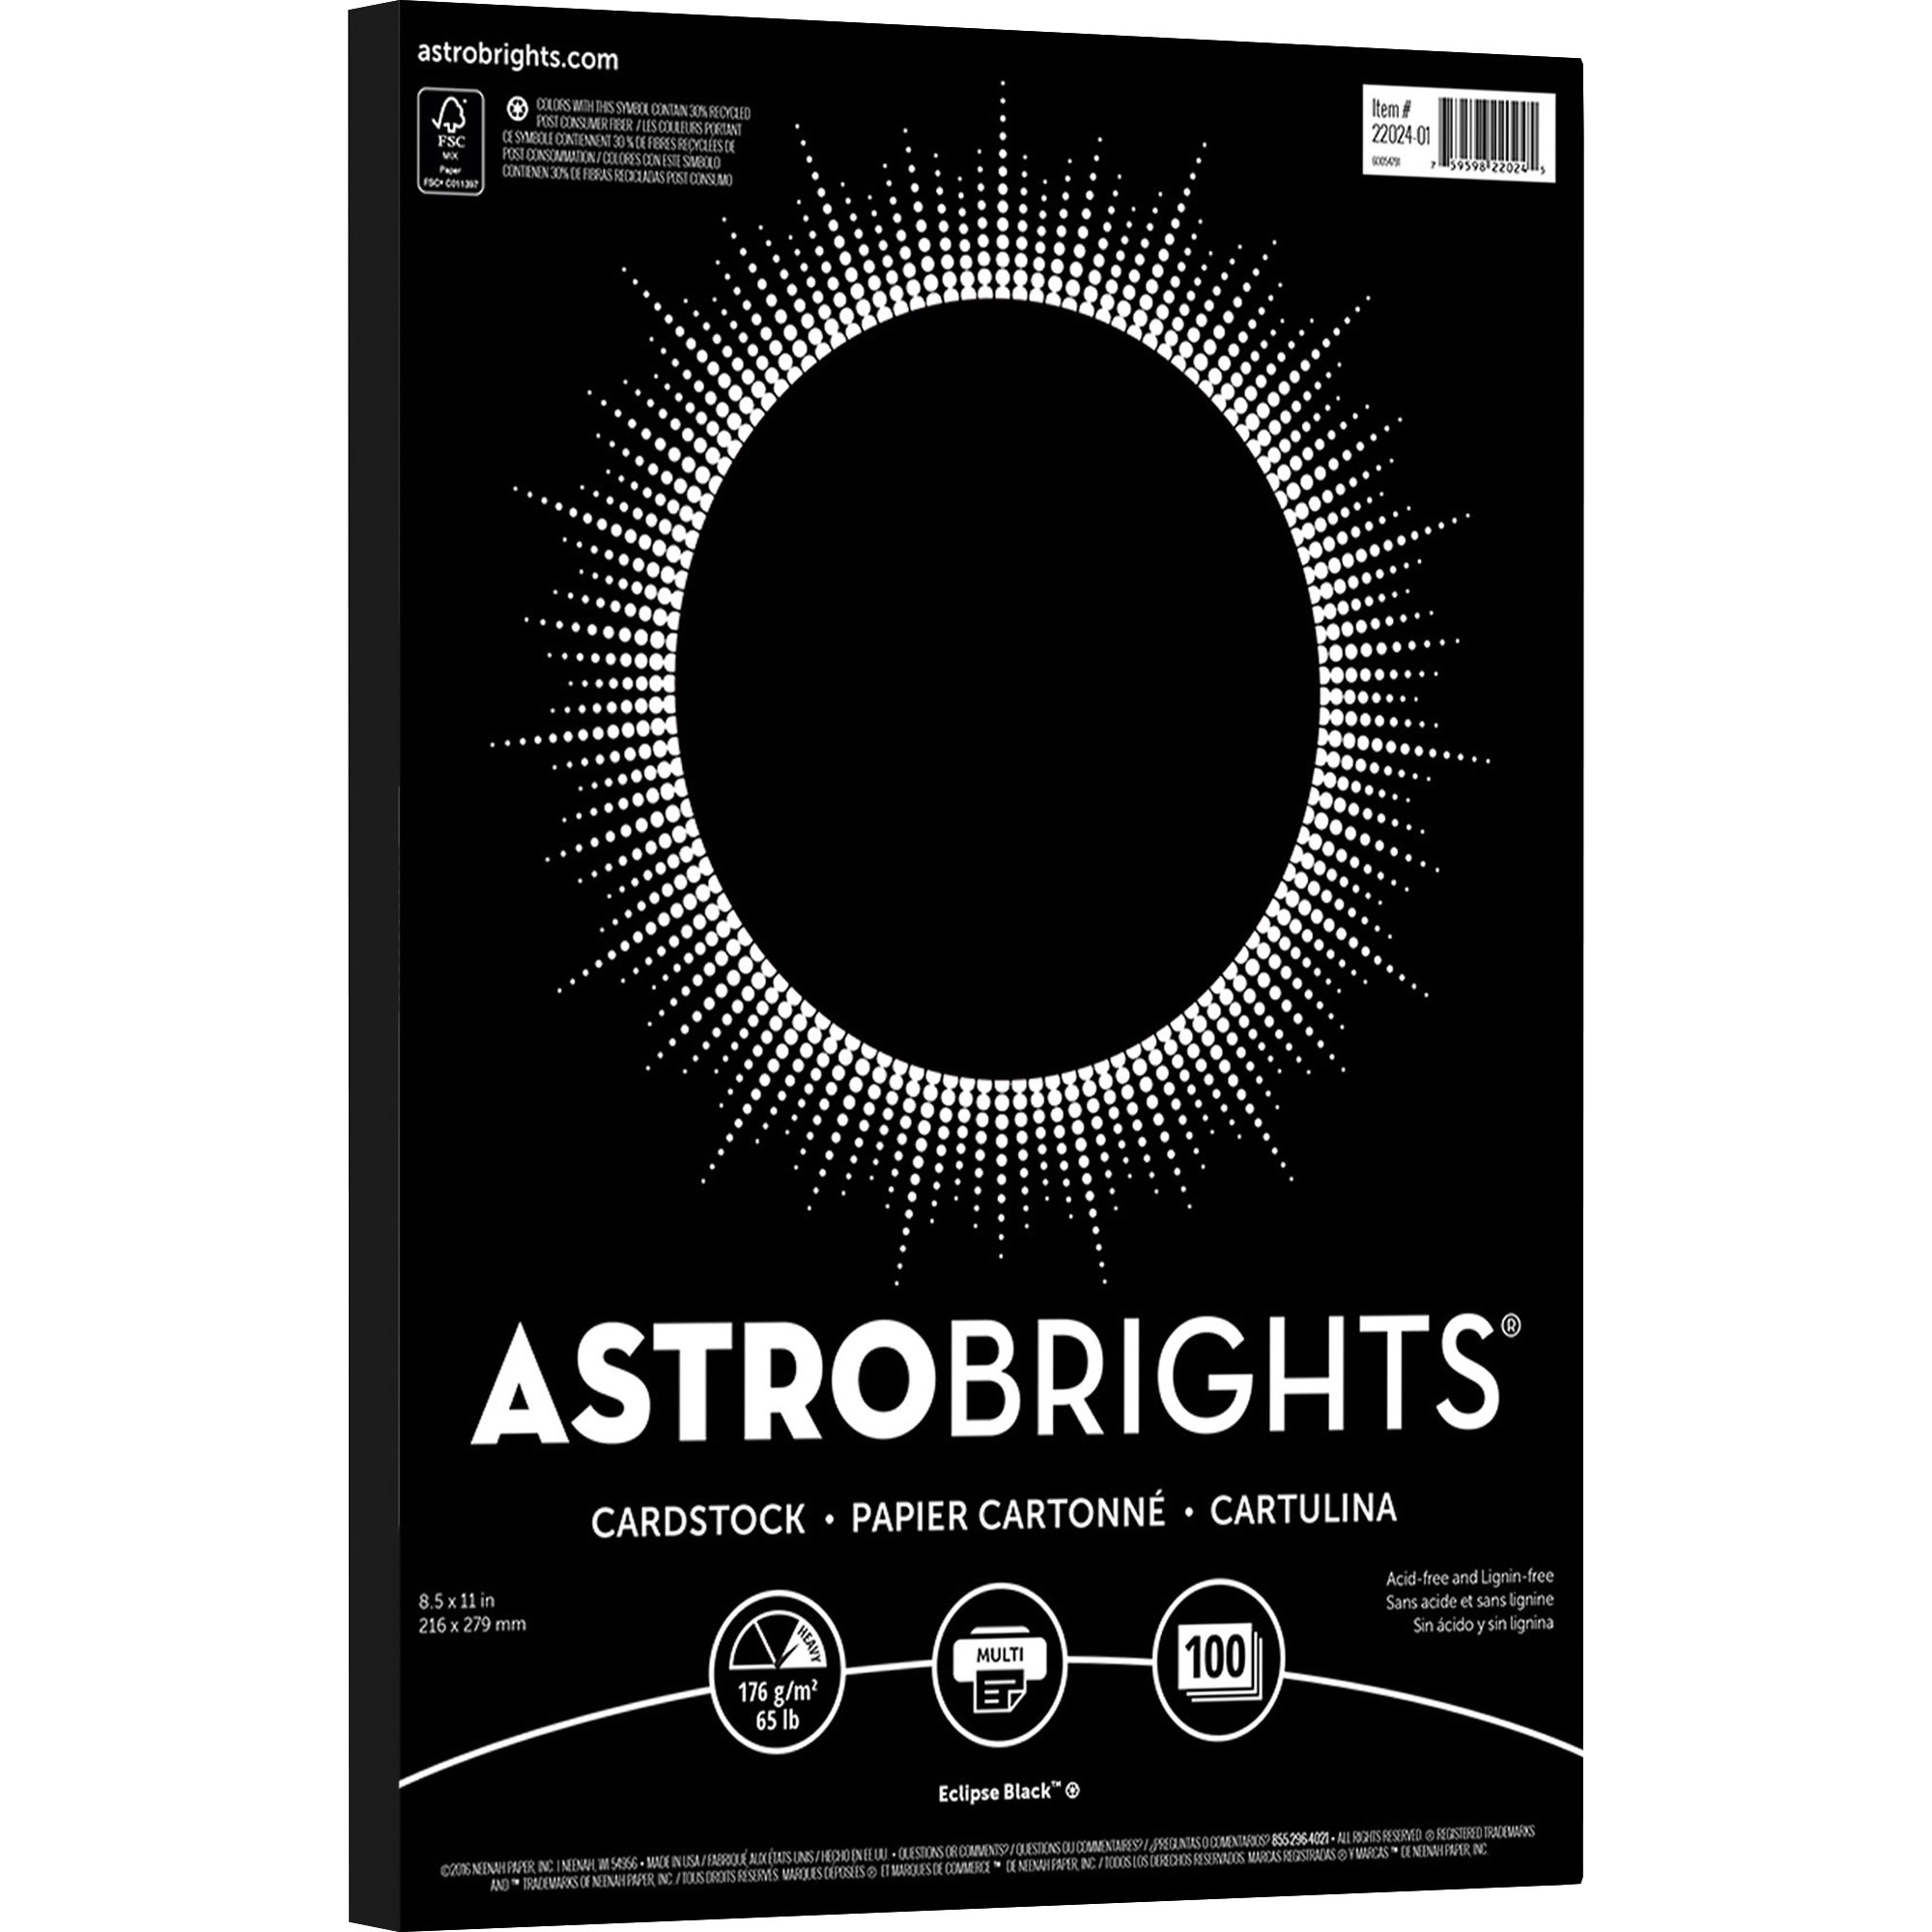 Astrobrights, WAU22024, Colored Cardstock, 100 / Pack, Eclipse Black